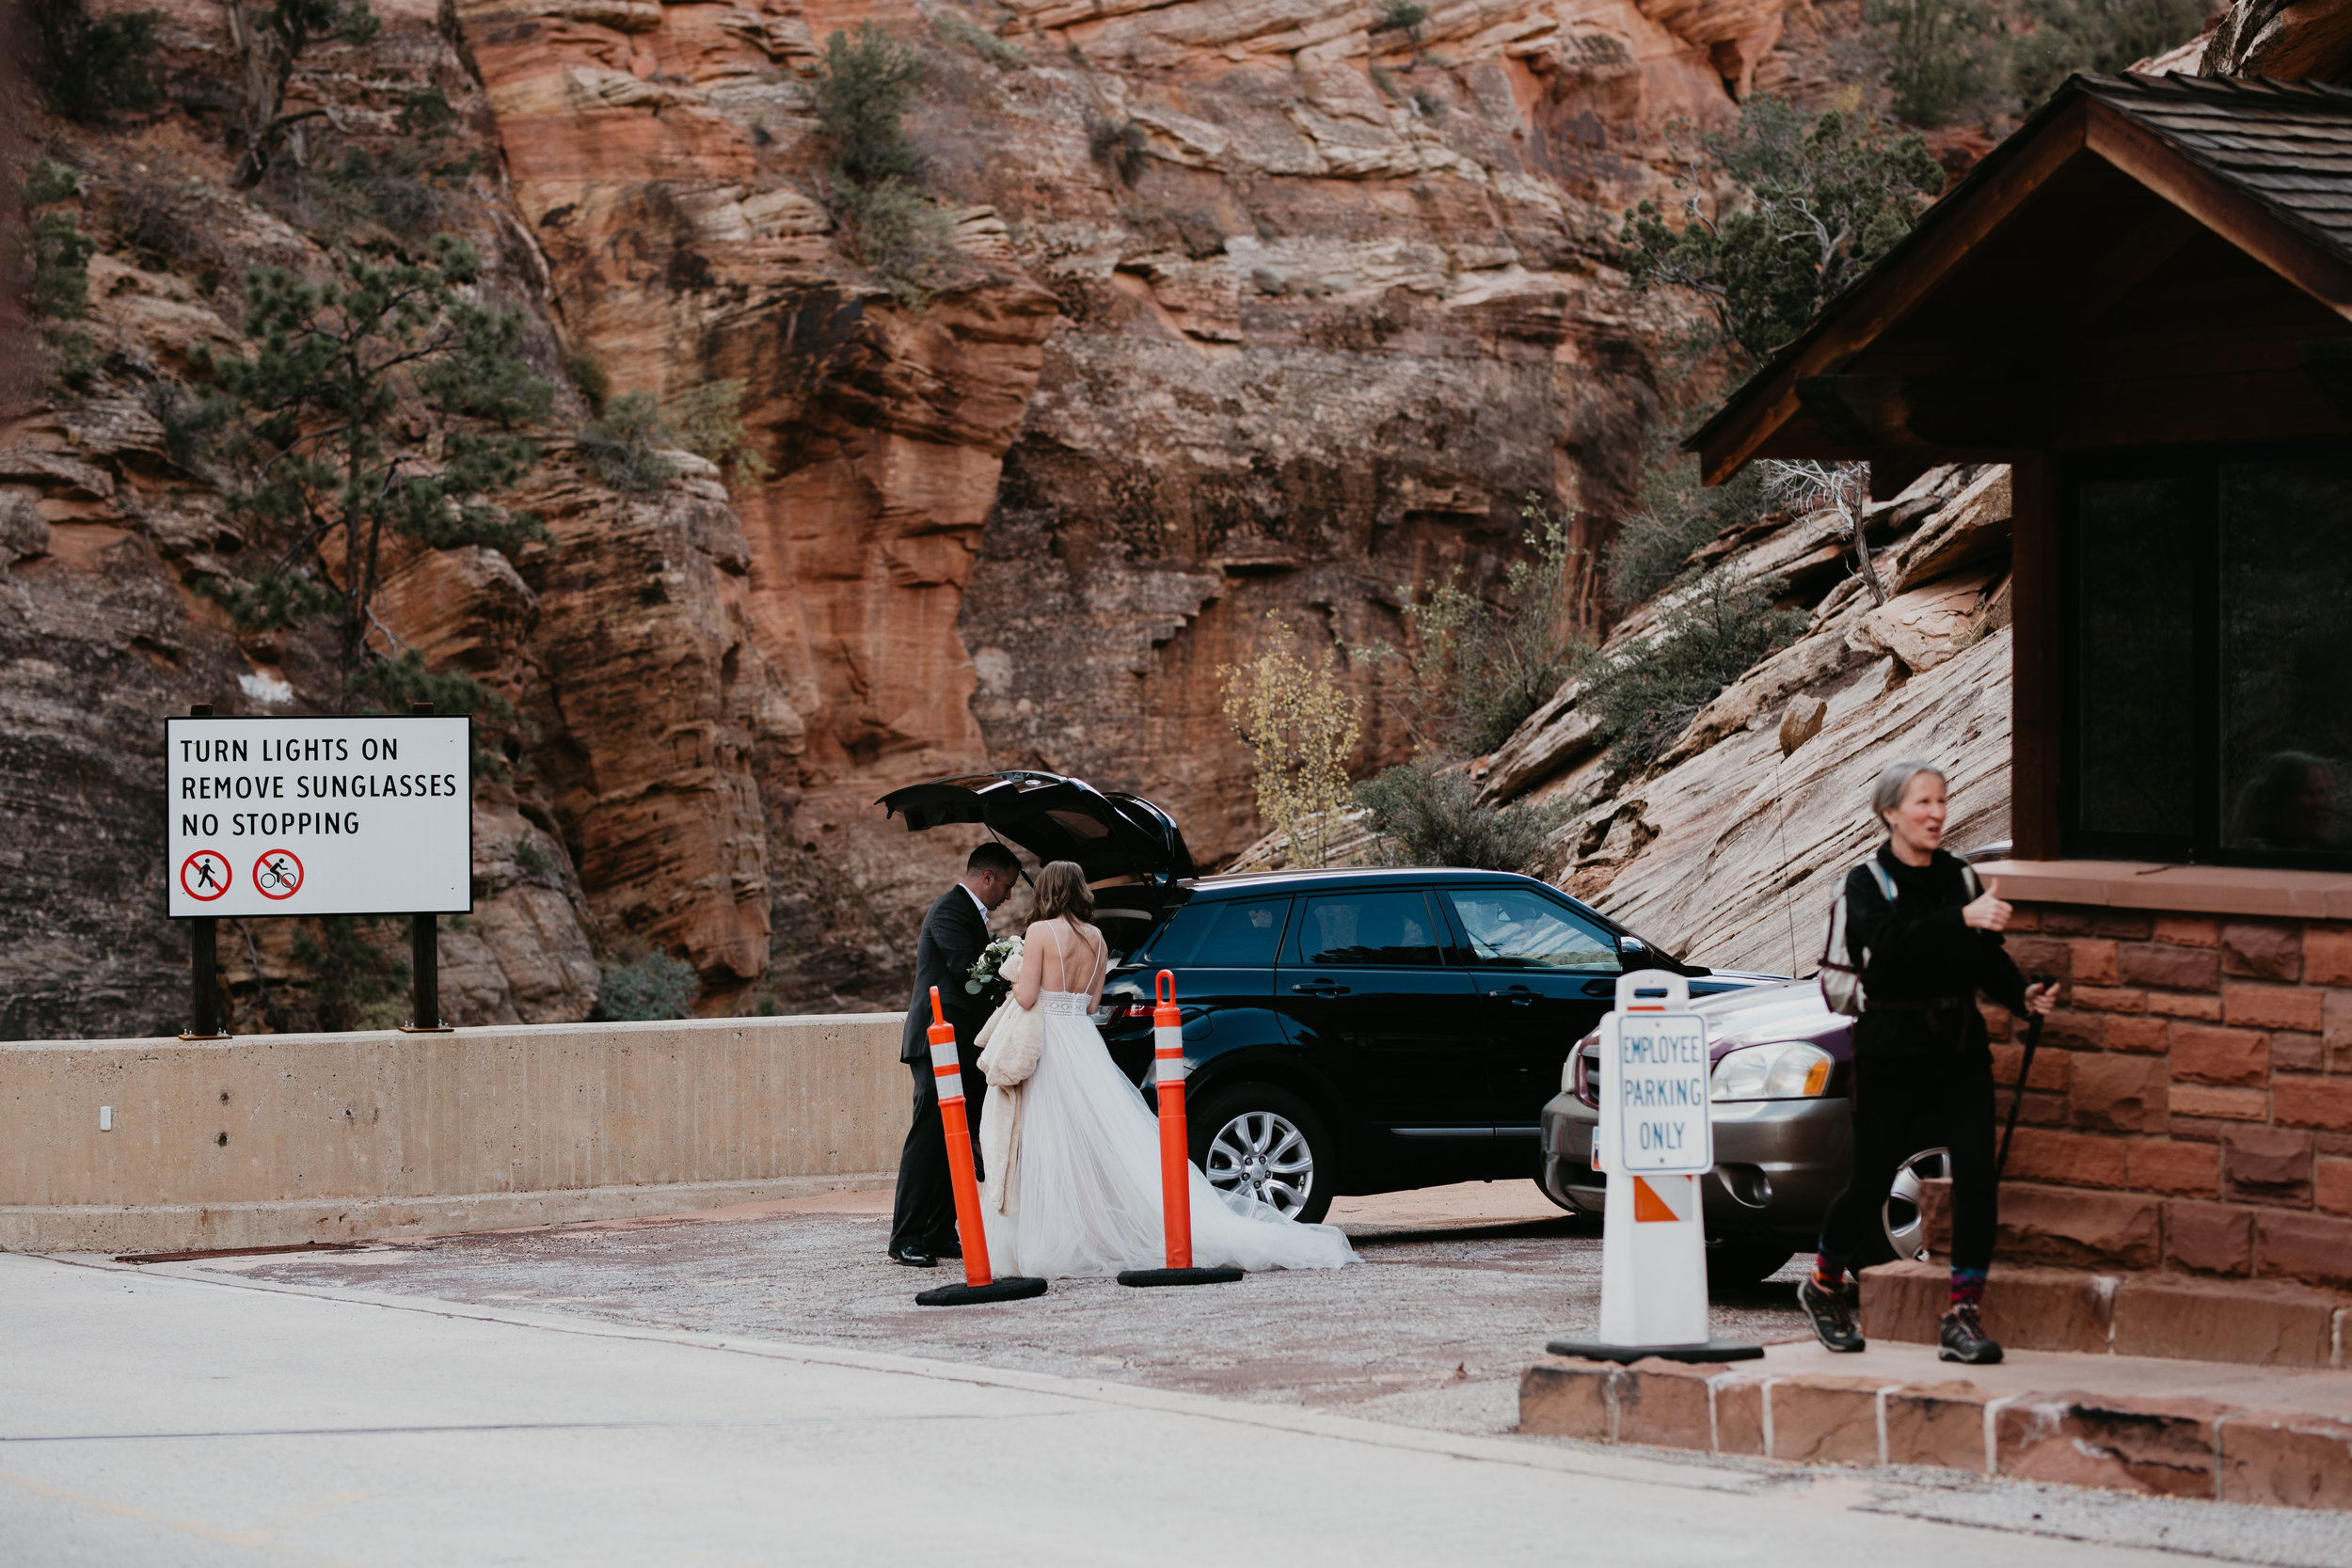 nicole-daacke-photography-zion-national-park-elopement-photographer-canyon-overlook-trail-elope-hiking-adventure-wedding-photos-fall-utah-red-rock-canyon-stgeorge-eloping-photographer-26.jpg